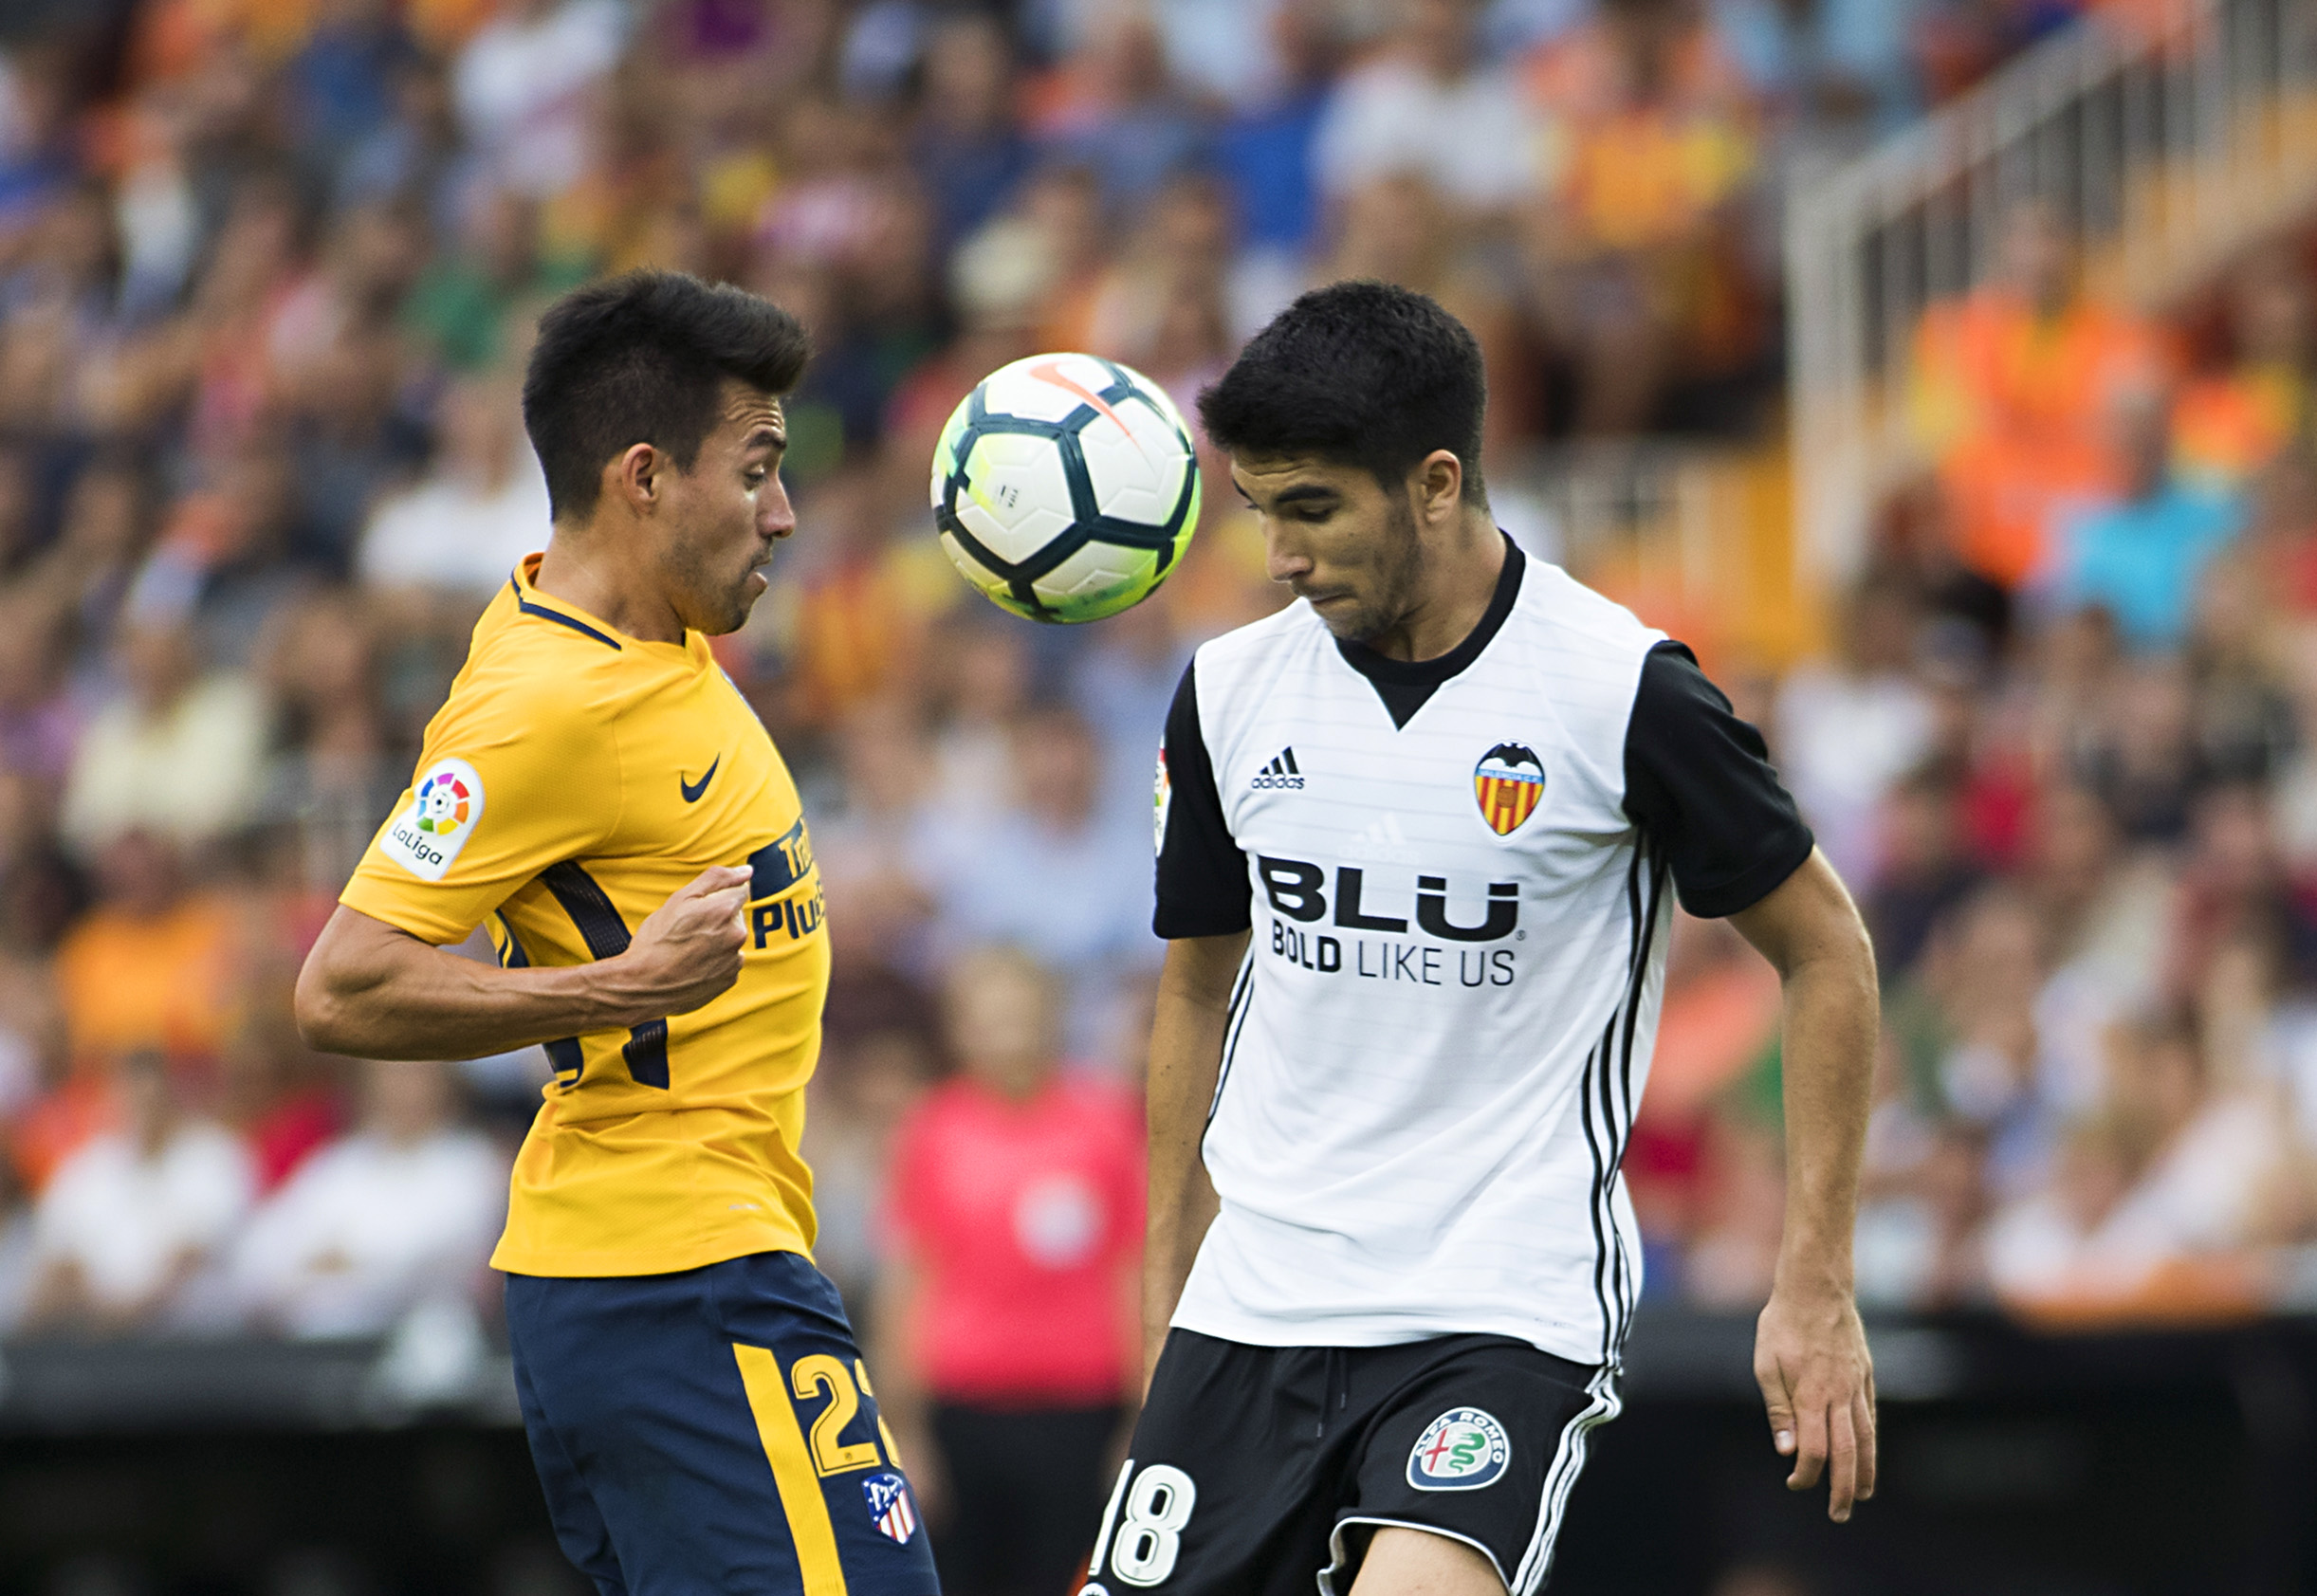 Liverpool keeping tabs on Valencia star Carlos Soler who is going from strength to strength in La Liga